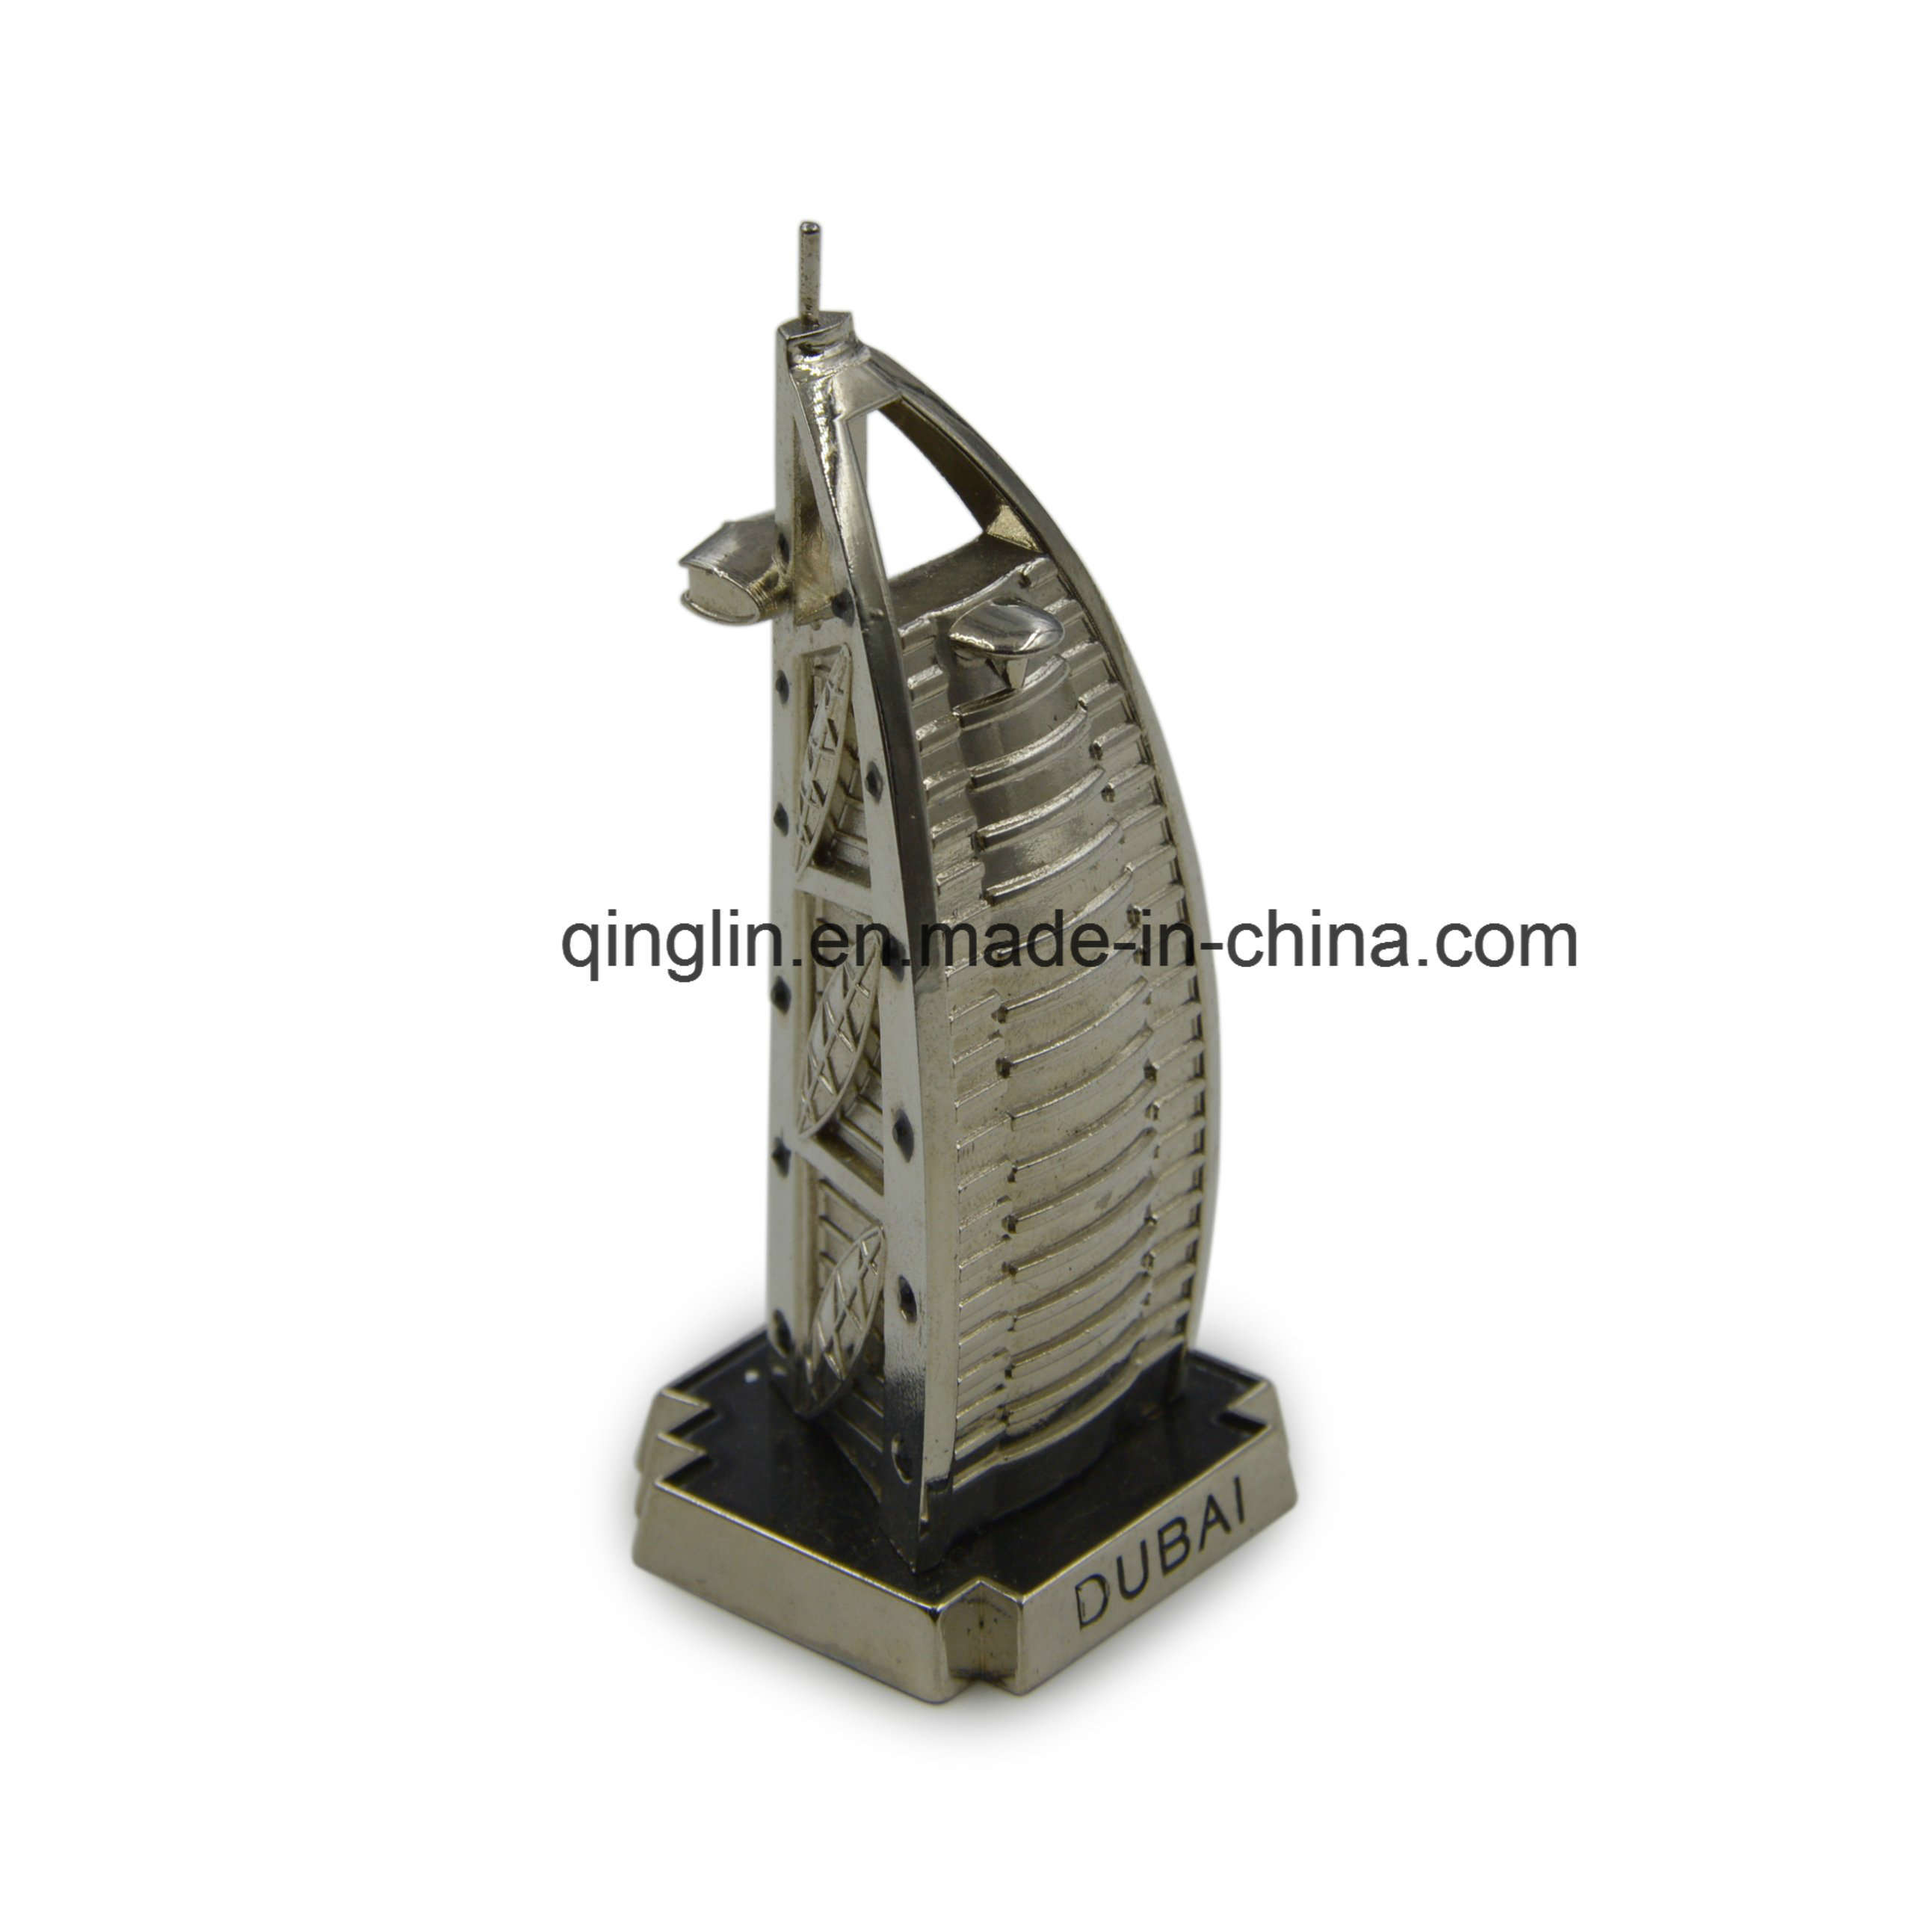 Promotional Custom Metal Tourist Model Souvenir